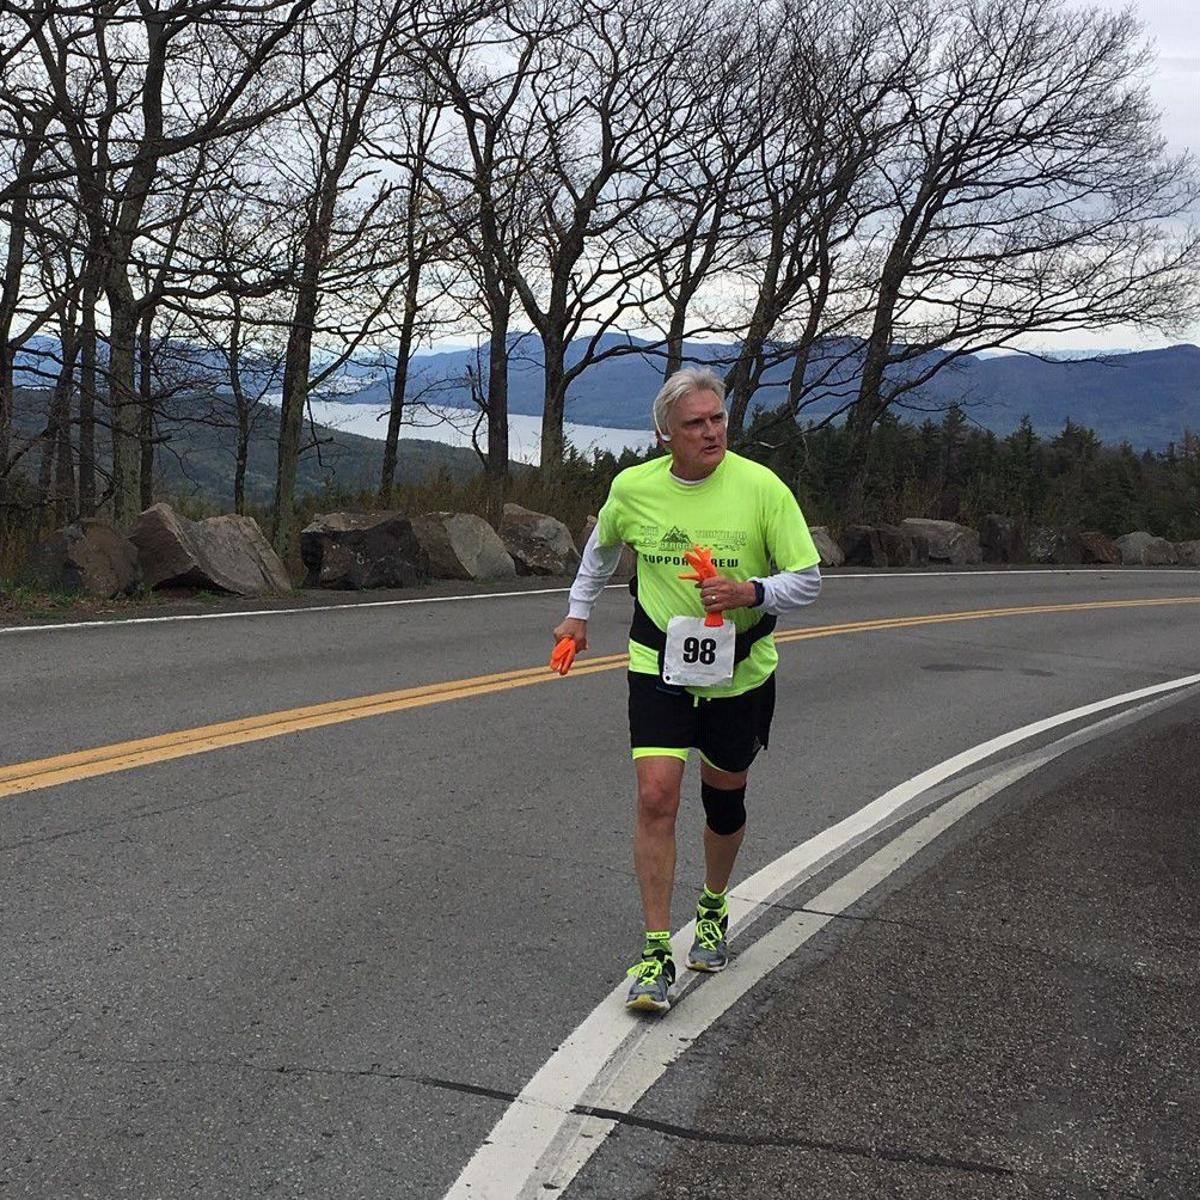 Prospect Mountain Road Race, the ultimate uphill climb, celebrating 30th running | Sports | poststar.com